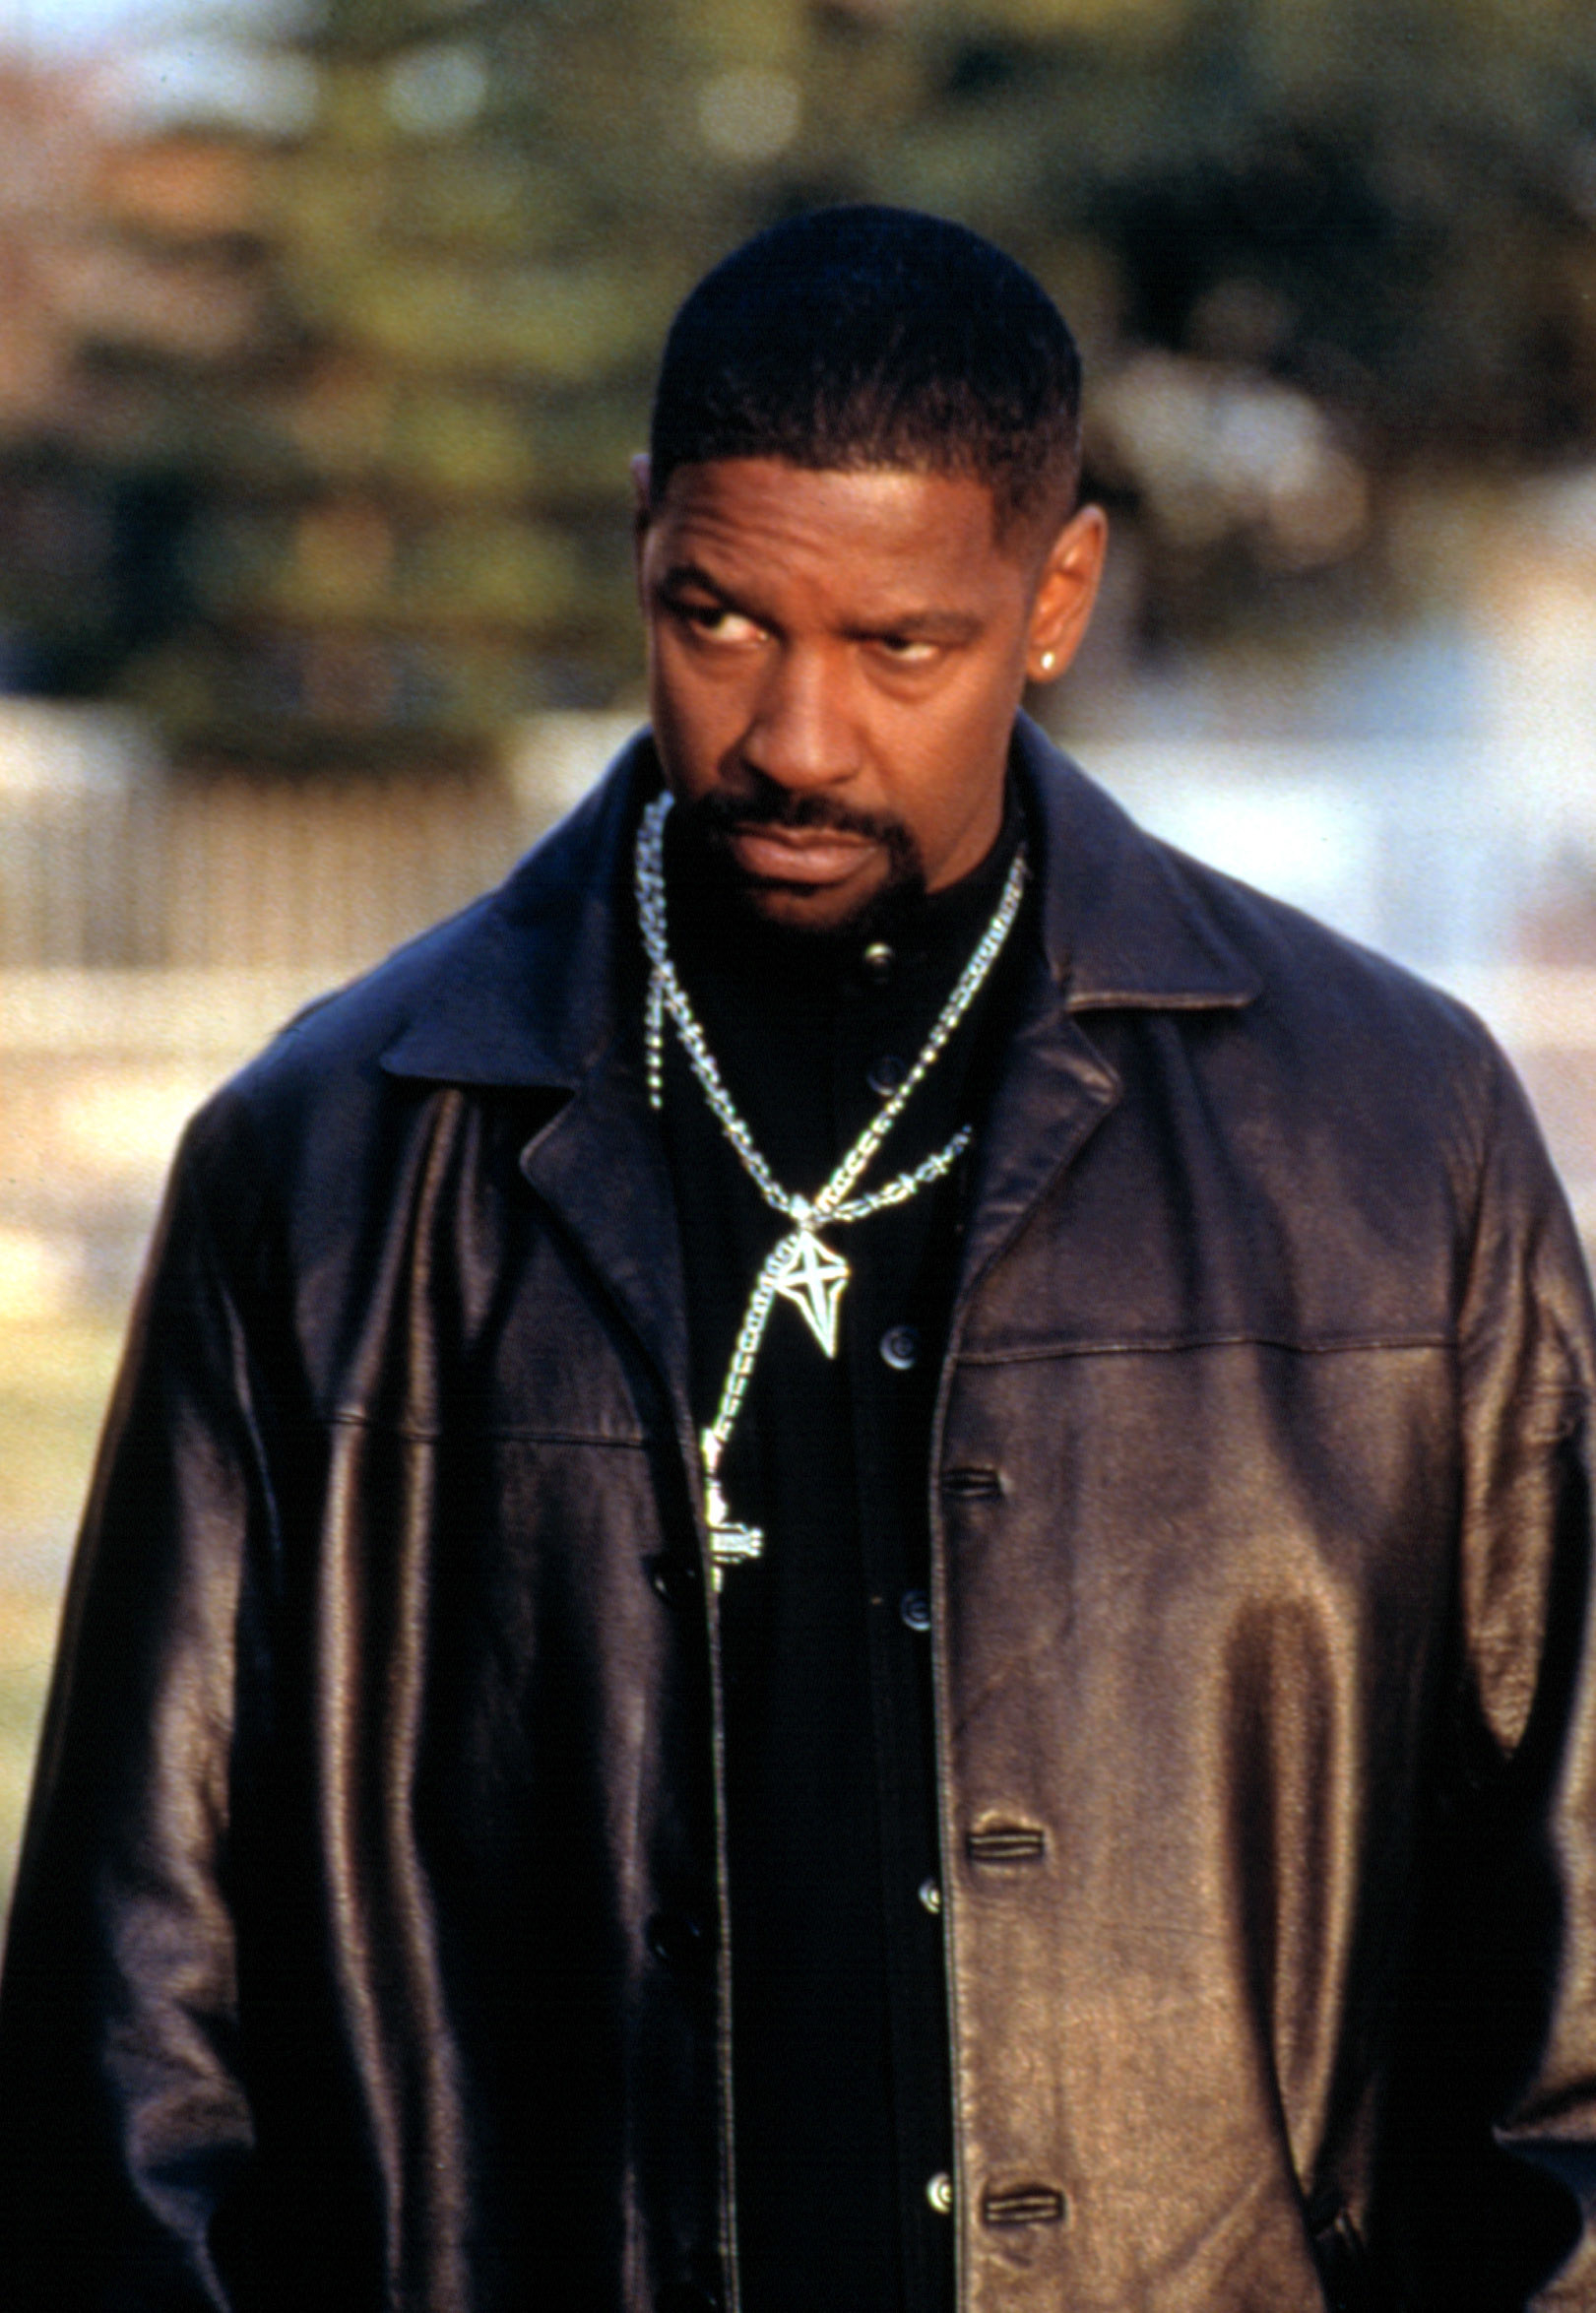 Denzel in a leather jacket